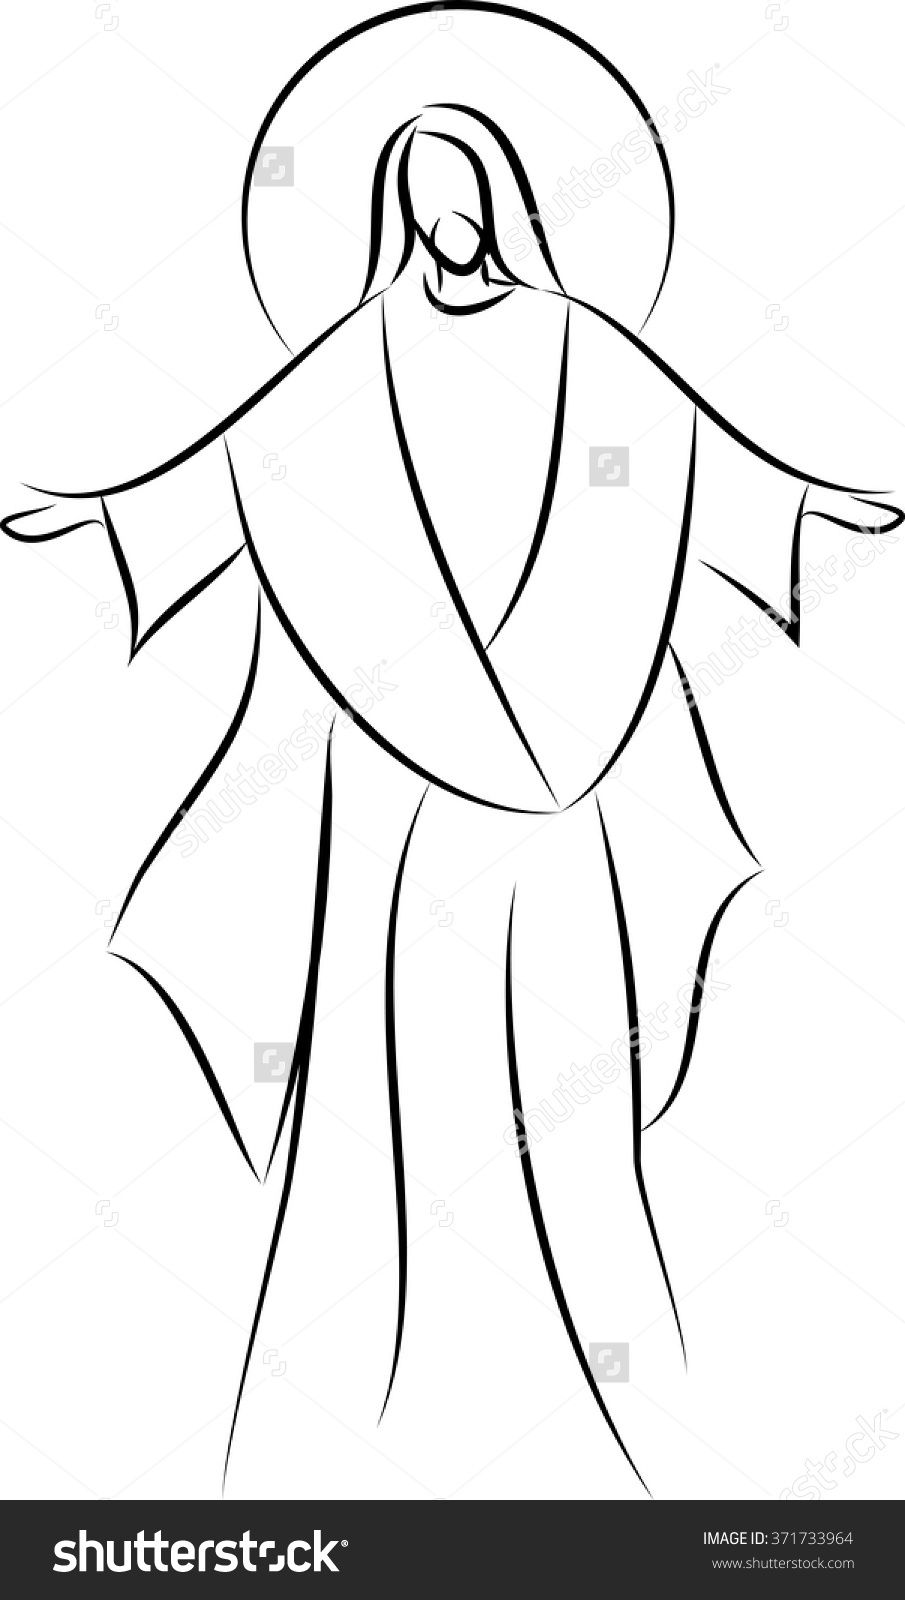 Line Drawing Pictures : Stock vector jesus christ simple line drawing